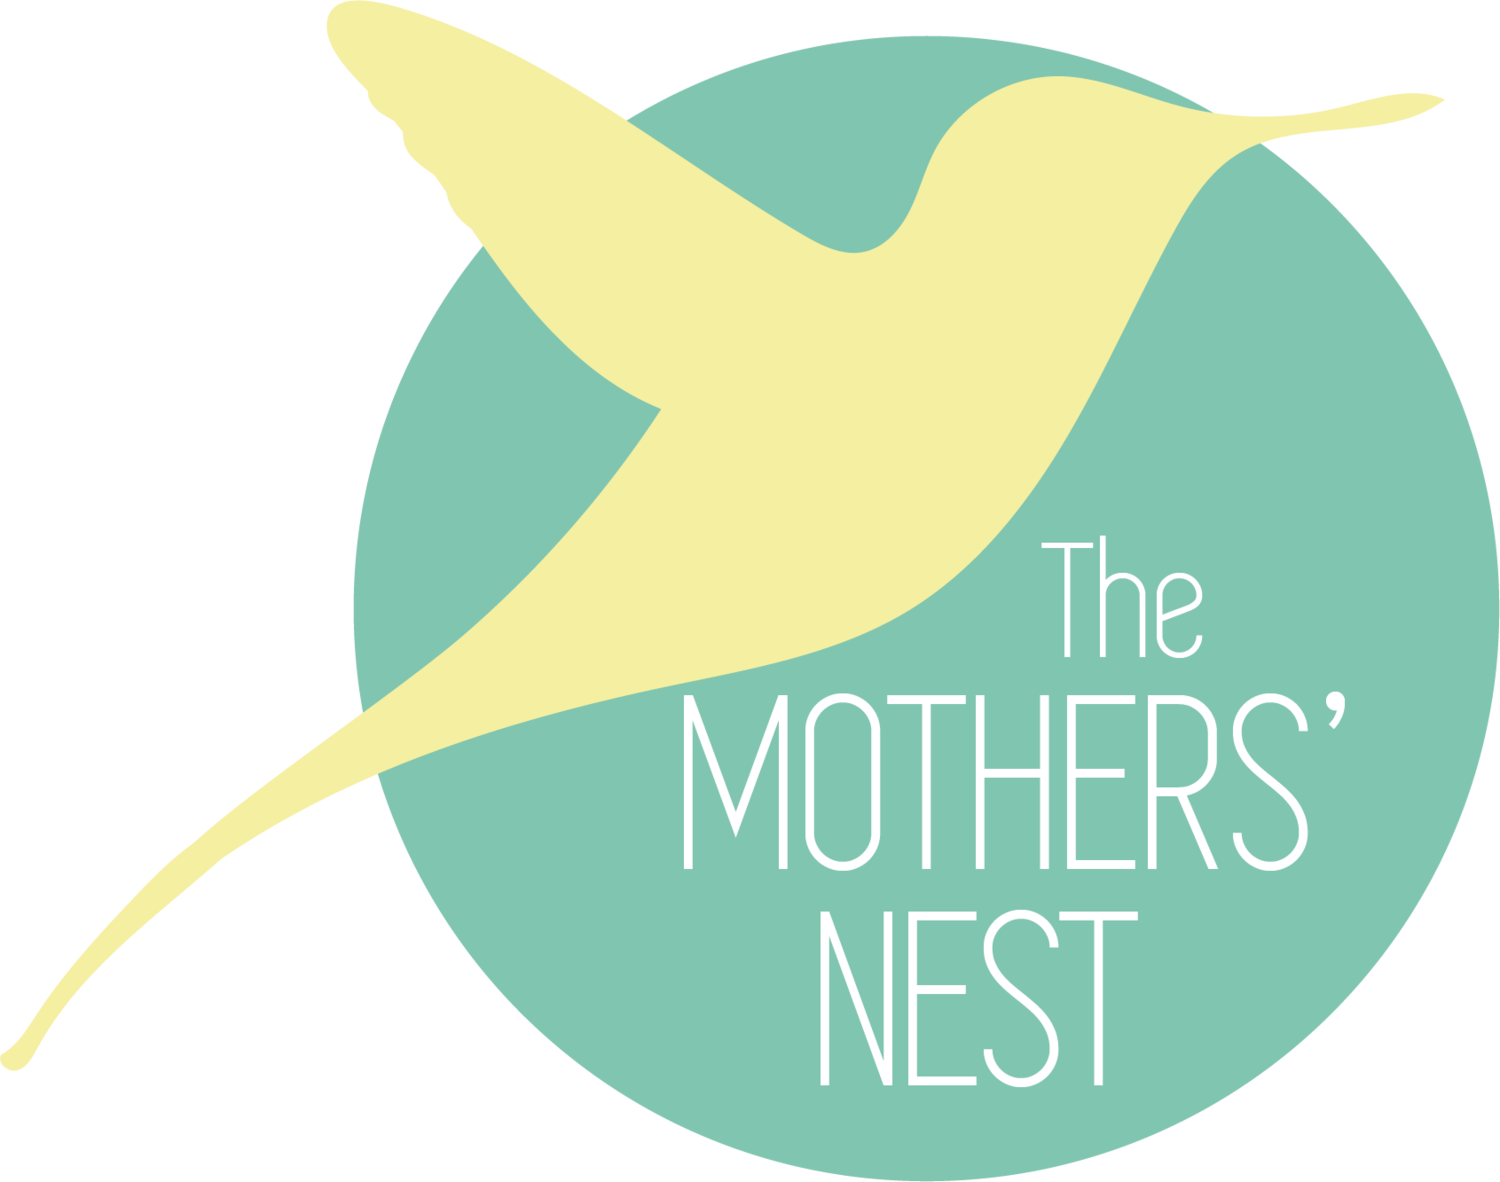 The Mothers' Nest